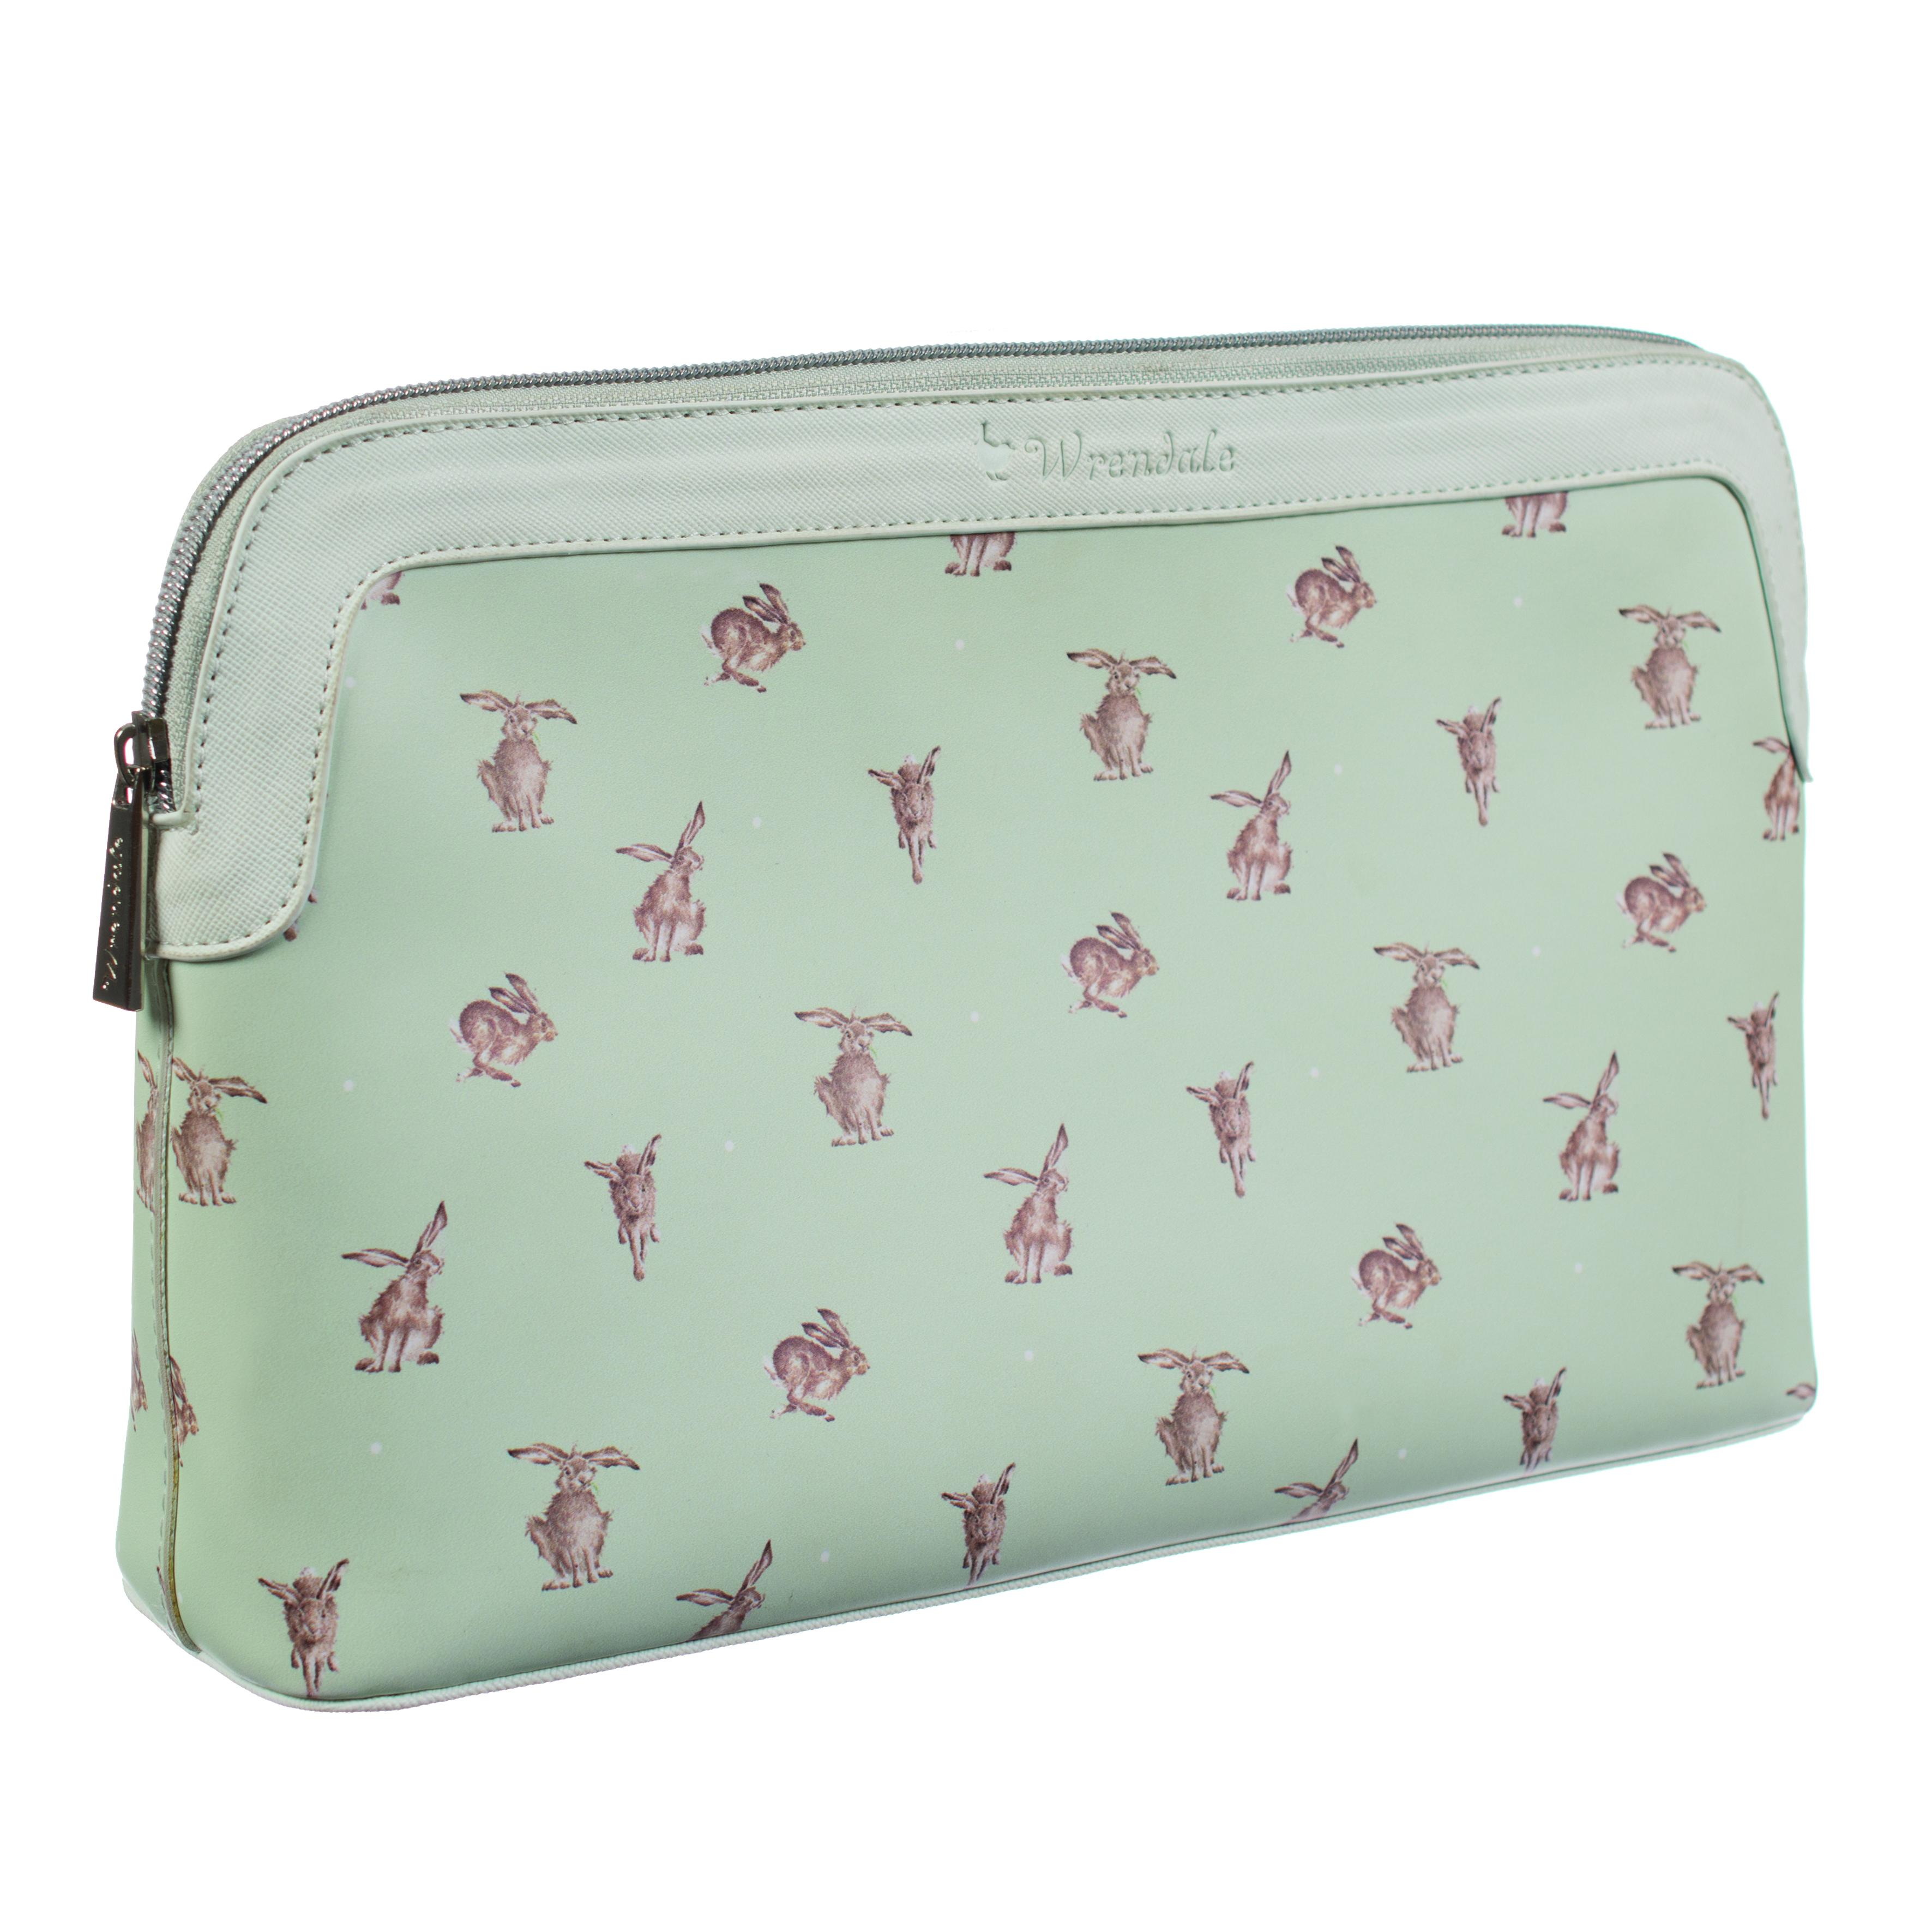 WRENDALE COSMETIC BAG LARGE - HARE SIDE